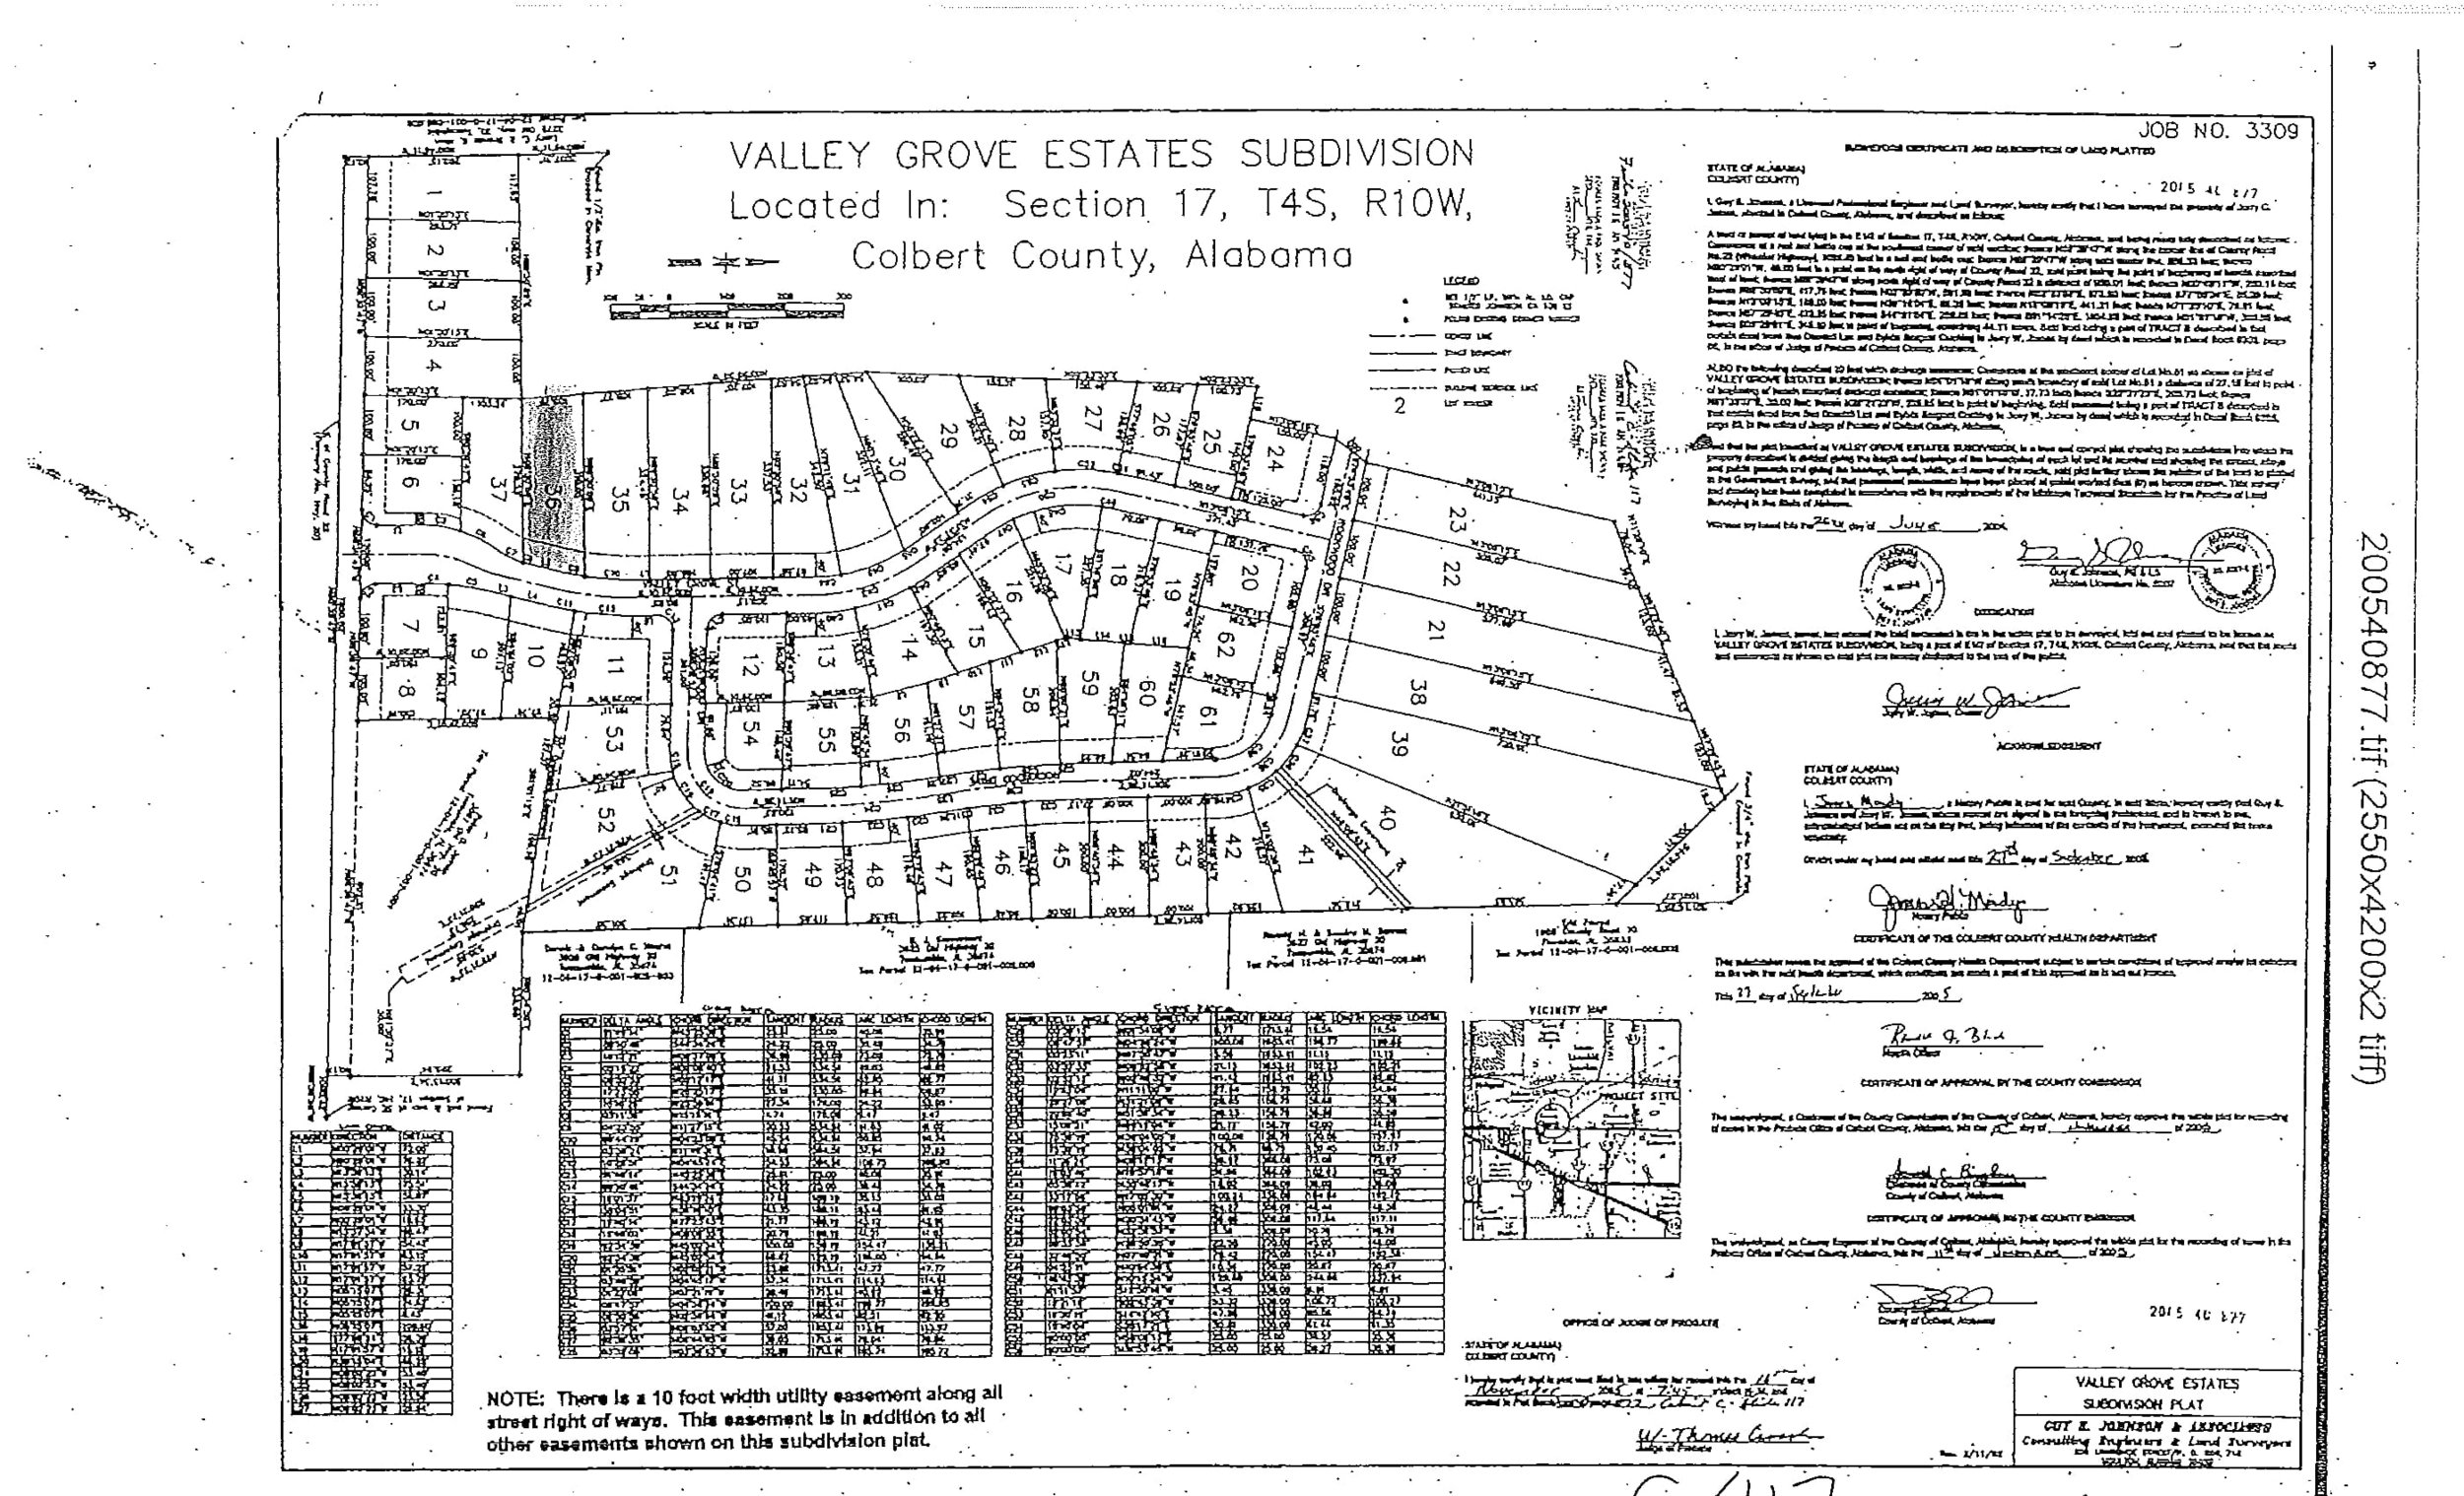 Plat-Valley-Grove-Estates-Subdivision-1.jpg